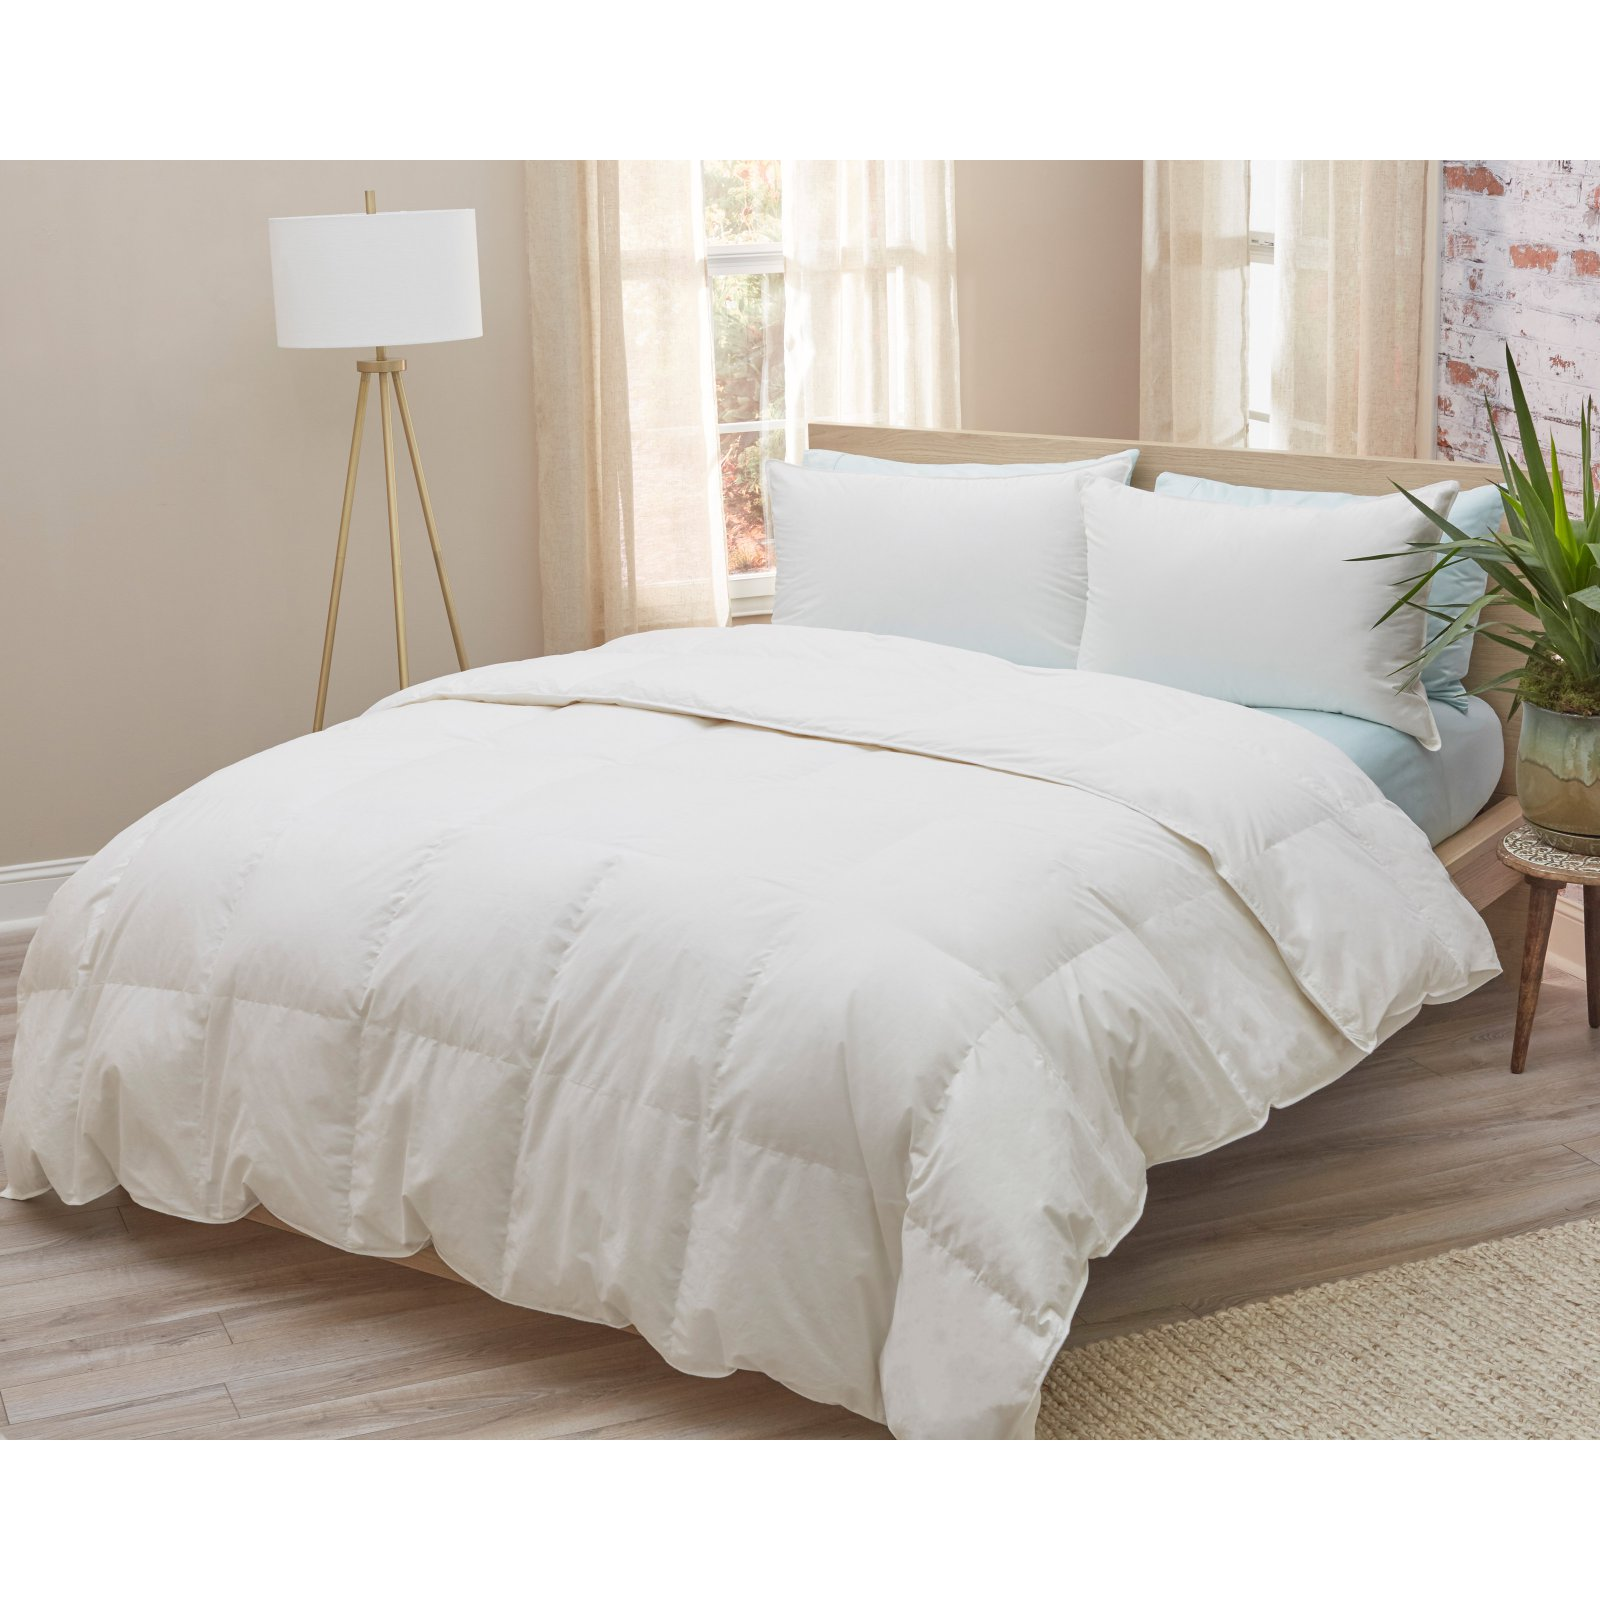 Amberly Bedding Luxury Summer Weight Down Comforter